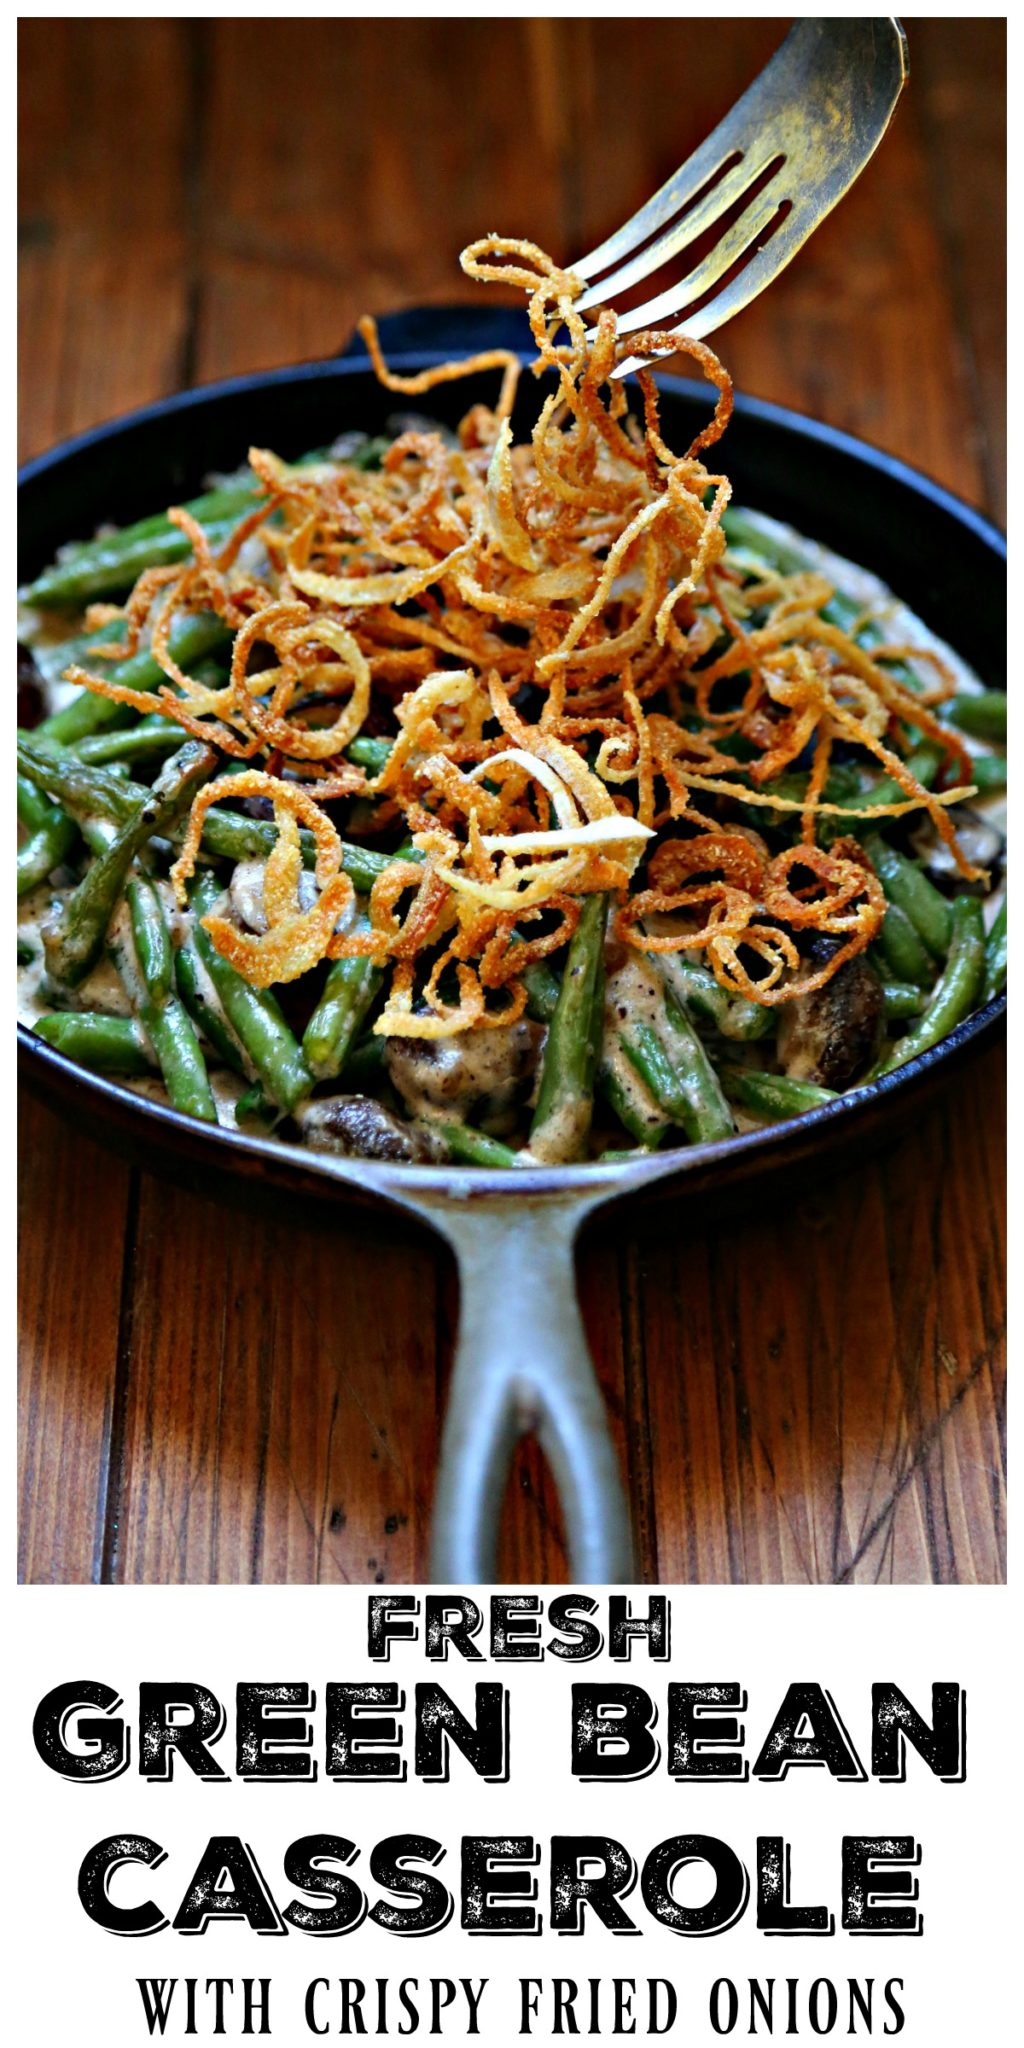 You can't go wrong with a FRESH take on the classic green bean casserole. It's filled with creamy, crunchy goodness. #casserole #sidedish #thanksgiving #vegetarian #greenbeans